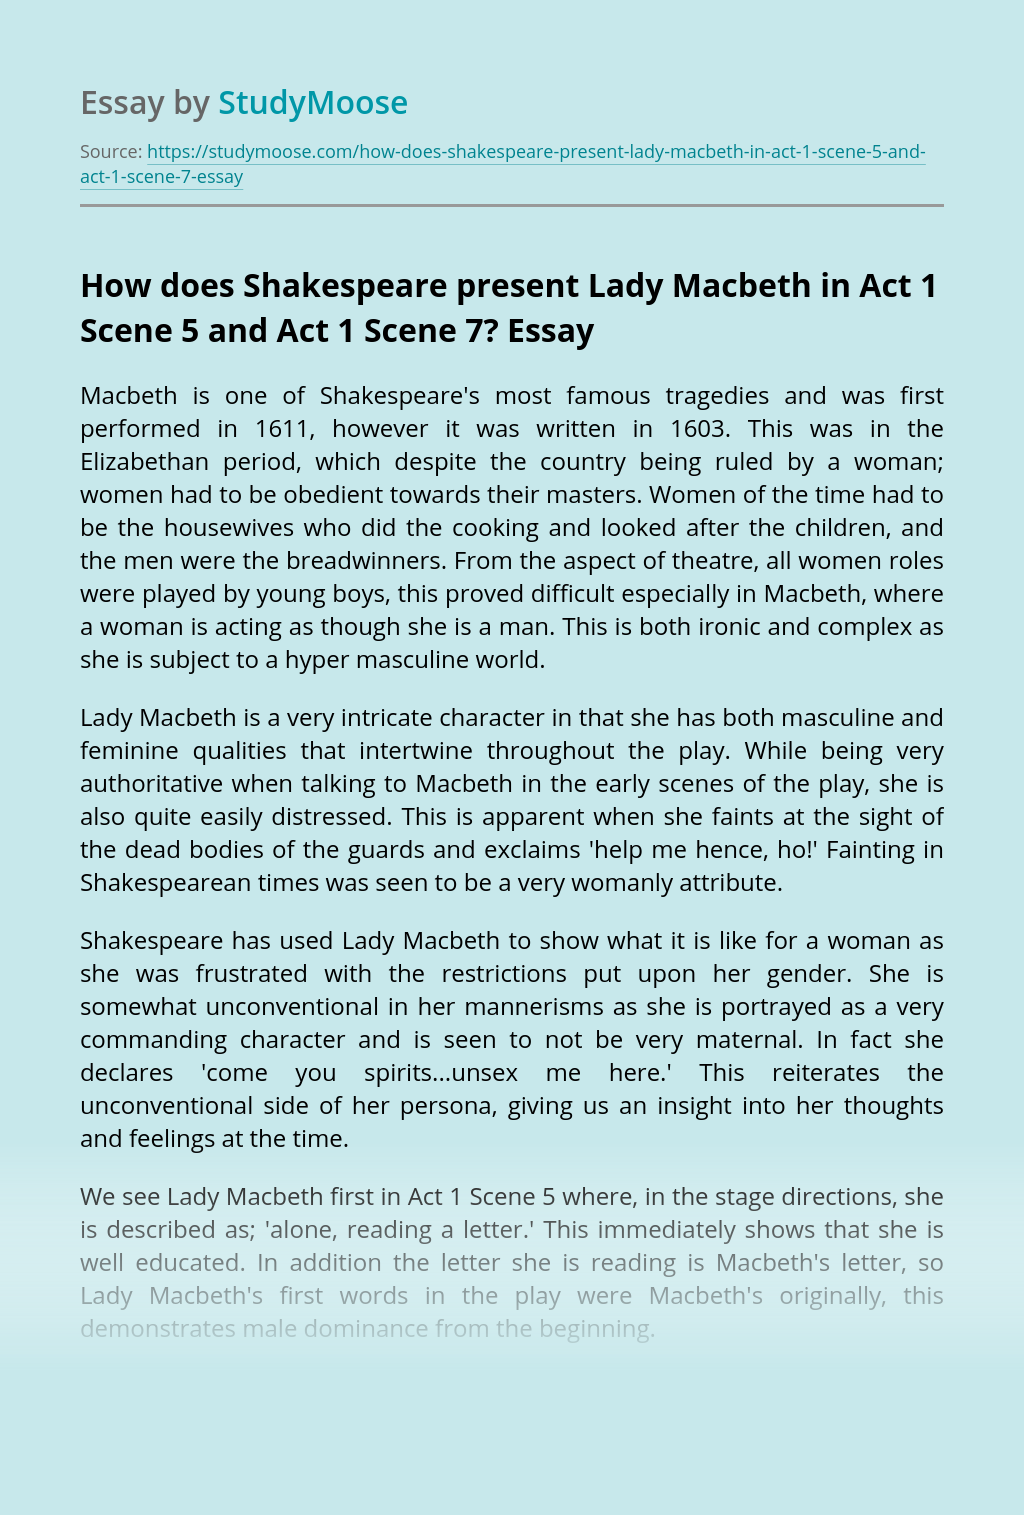 How does Shakespeare present Lady Macbeth in Act 1 Scene 5 and Act 1 Scene 7?